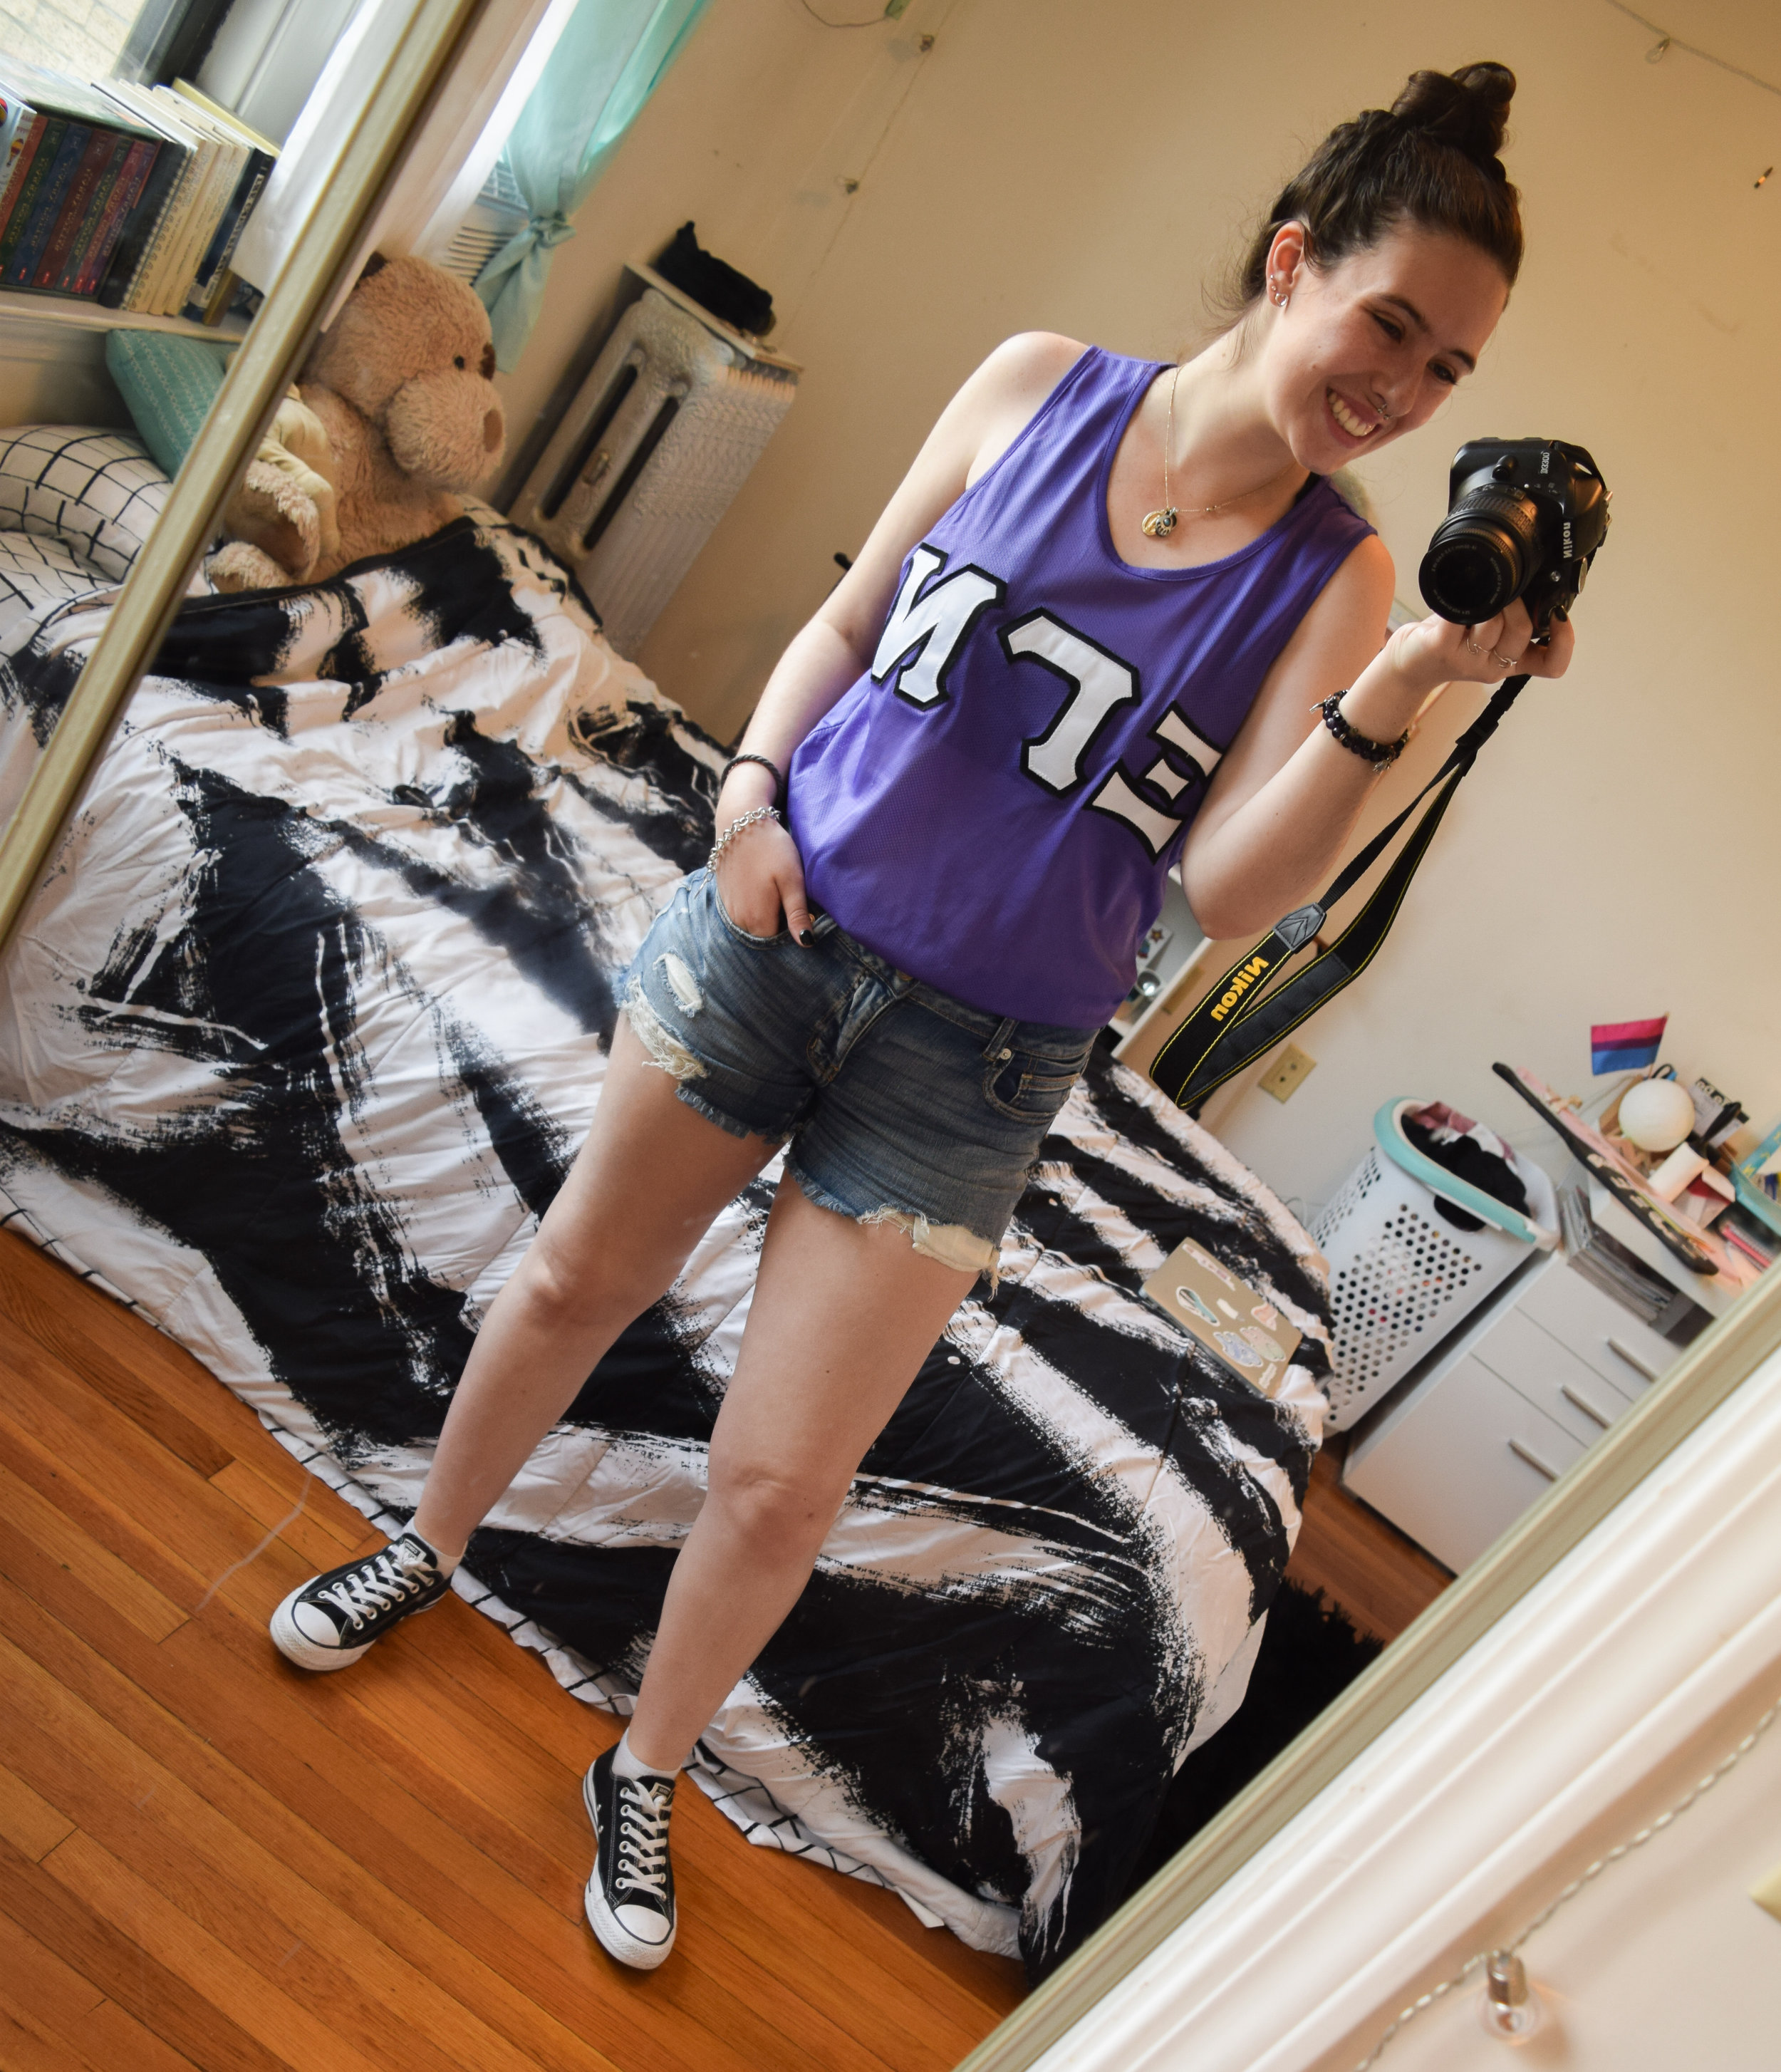 somethinggreekbasketballtankdenimshortsblackconversetheclunkster.jpg